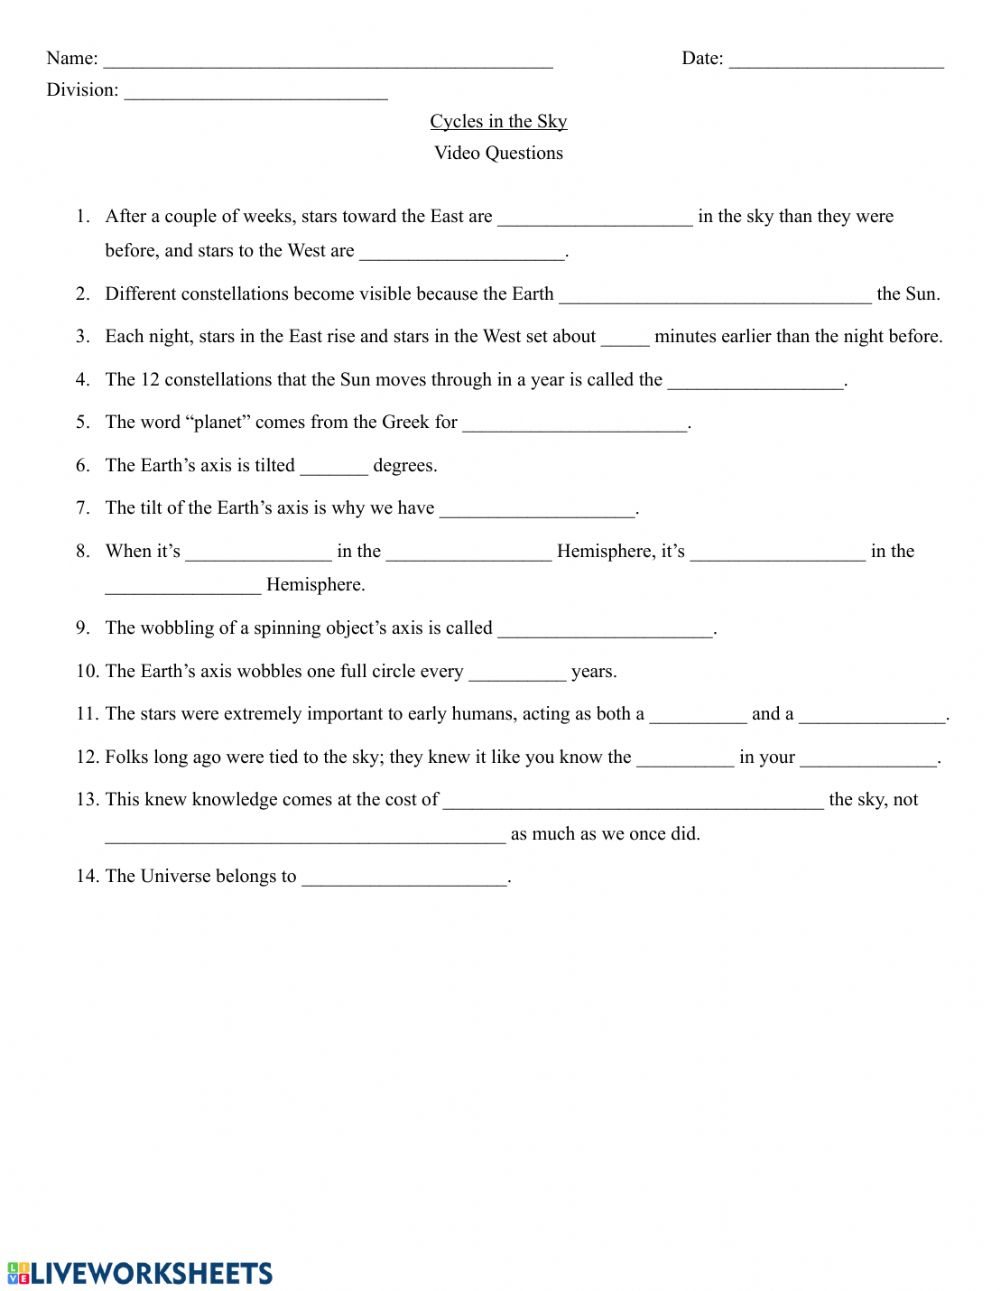 hight resolution of Crash Course Astronomy - Cycles in the Sky worksheet